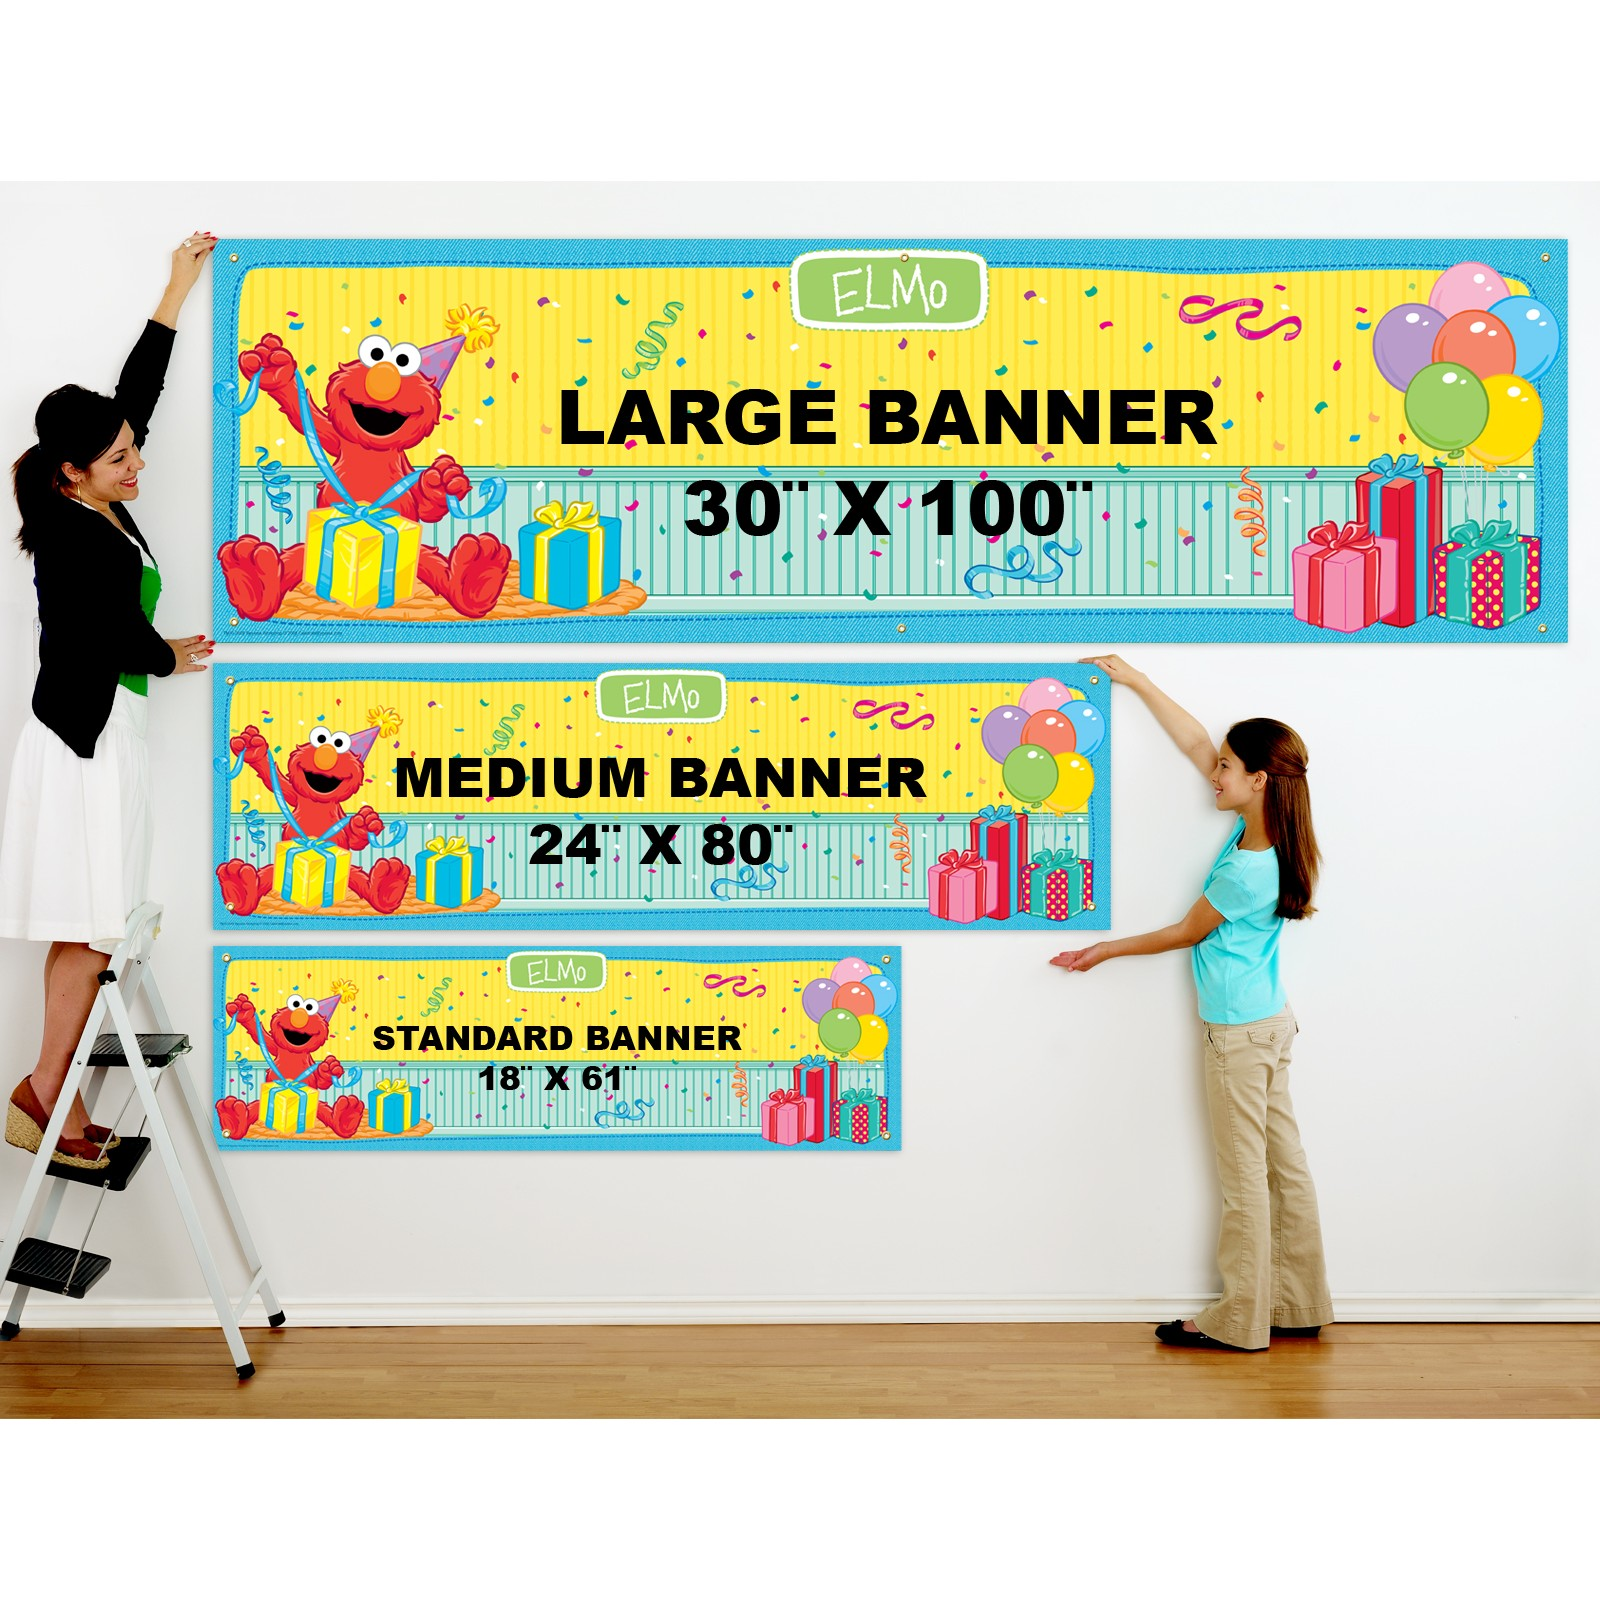 size of birthday banner ; personalized%2520photo%2520birthday%2520banners%2520for%2520adults%2520;%252070e2c721bf08f7046a4171c1142aabf0